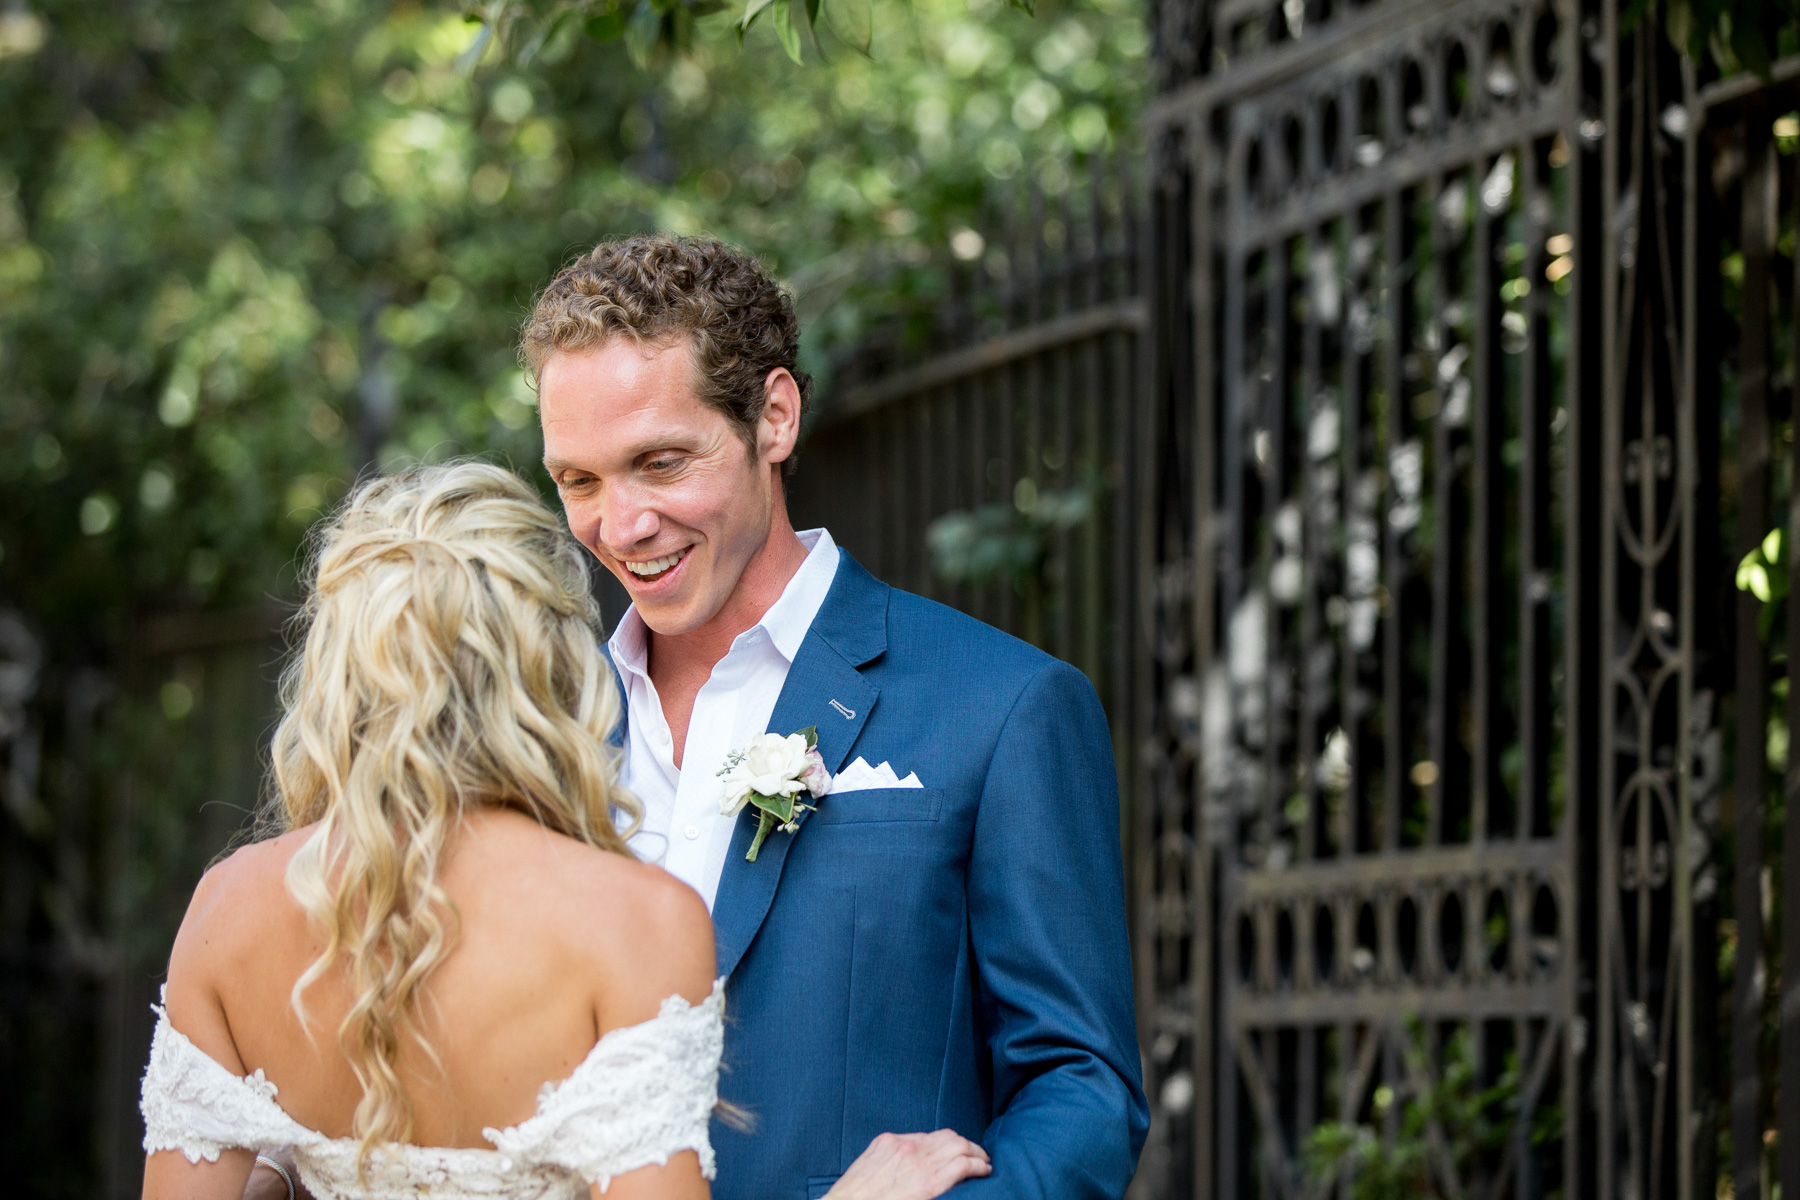 Charleston-best-wedding-photographer-SC-09.jpg